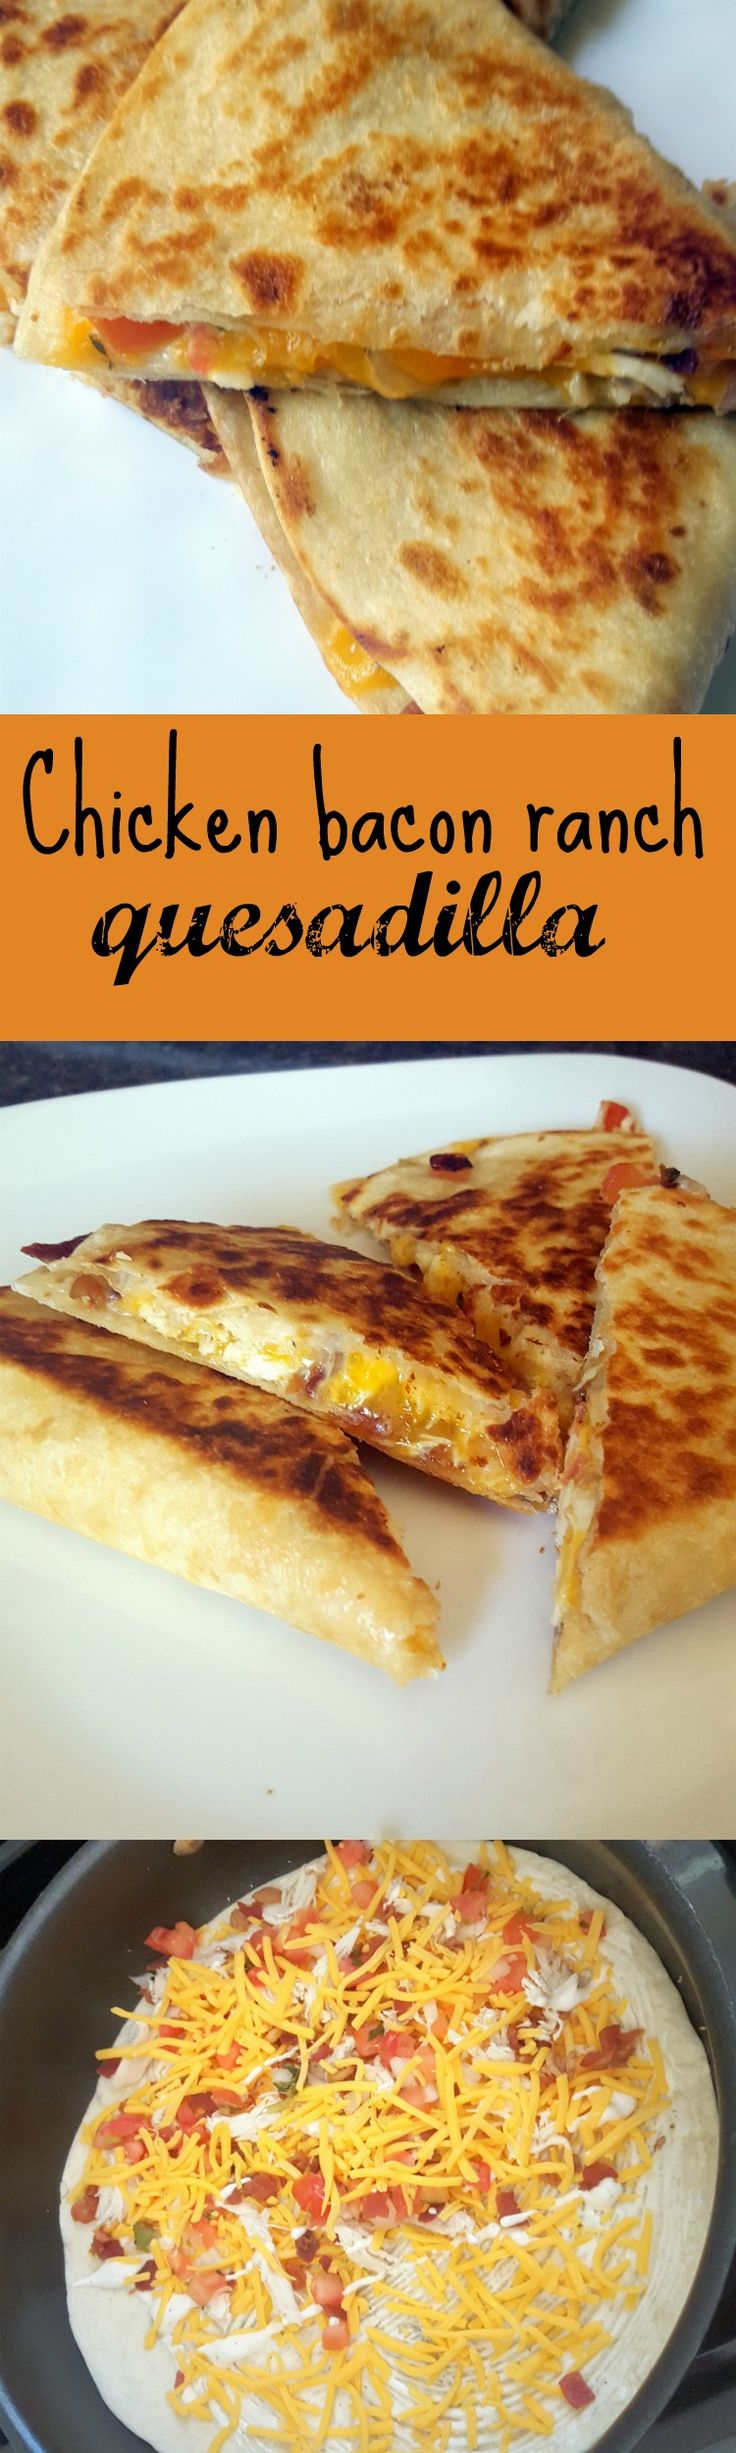 Chicken bacon ranch quesadilla - A crispy quesadilla filled with chicken, bacon and ranch. With the added kick of jalapenos and pico de gallo. More